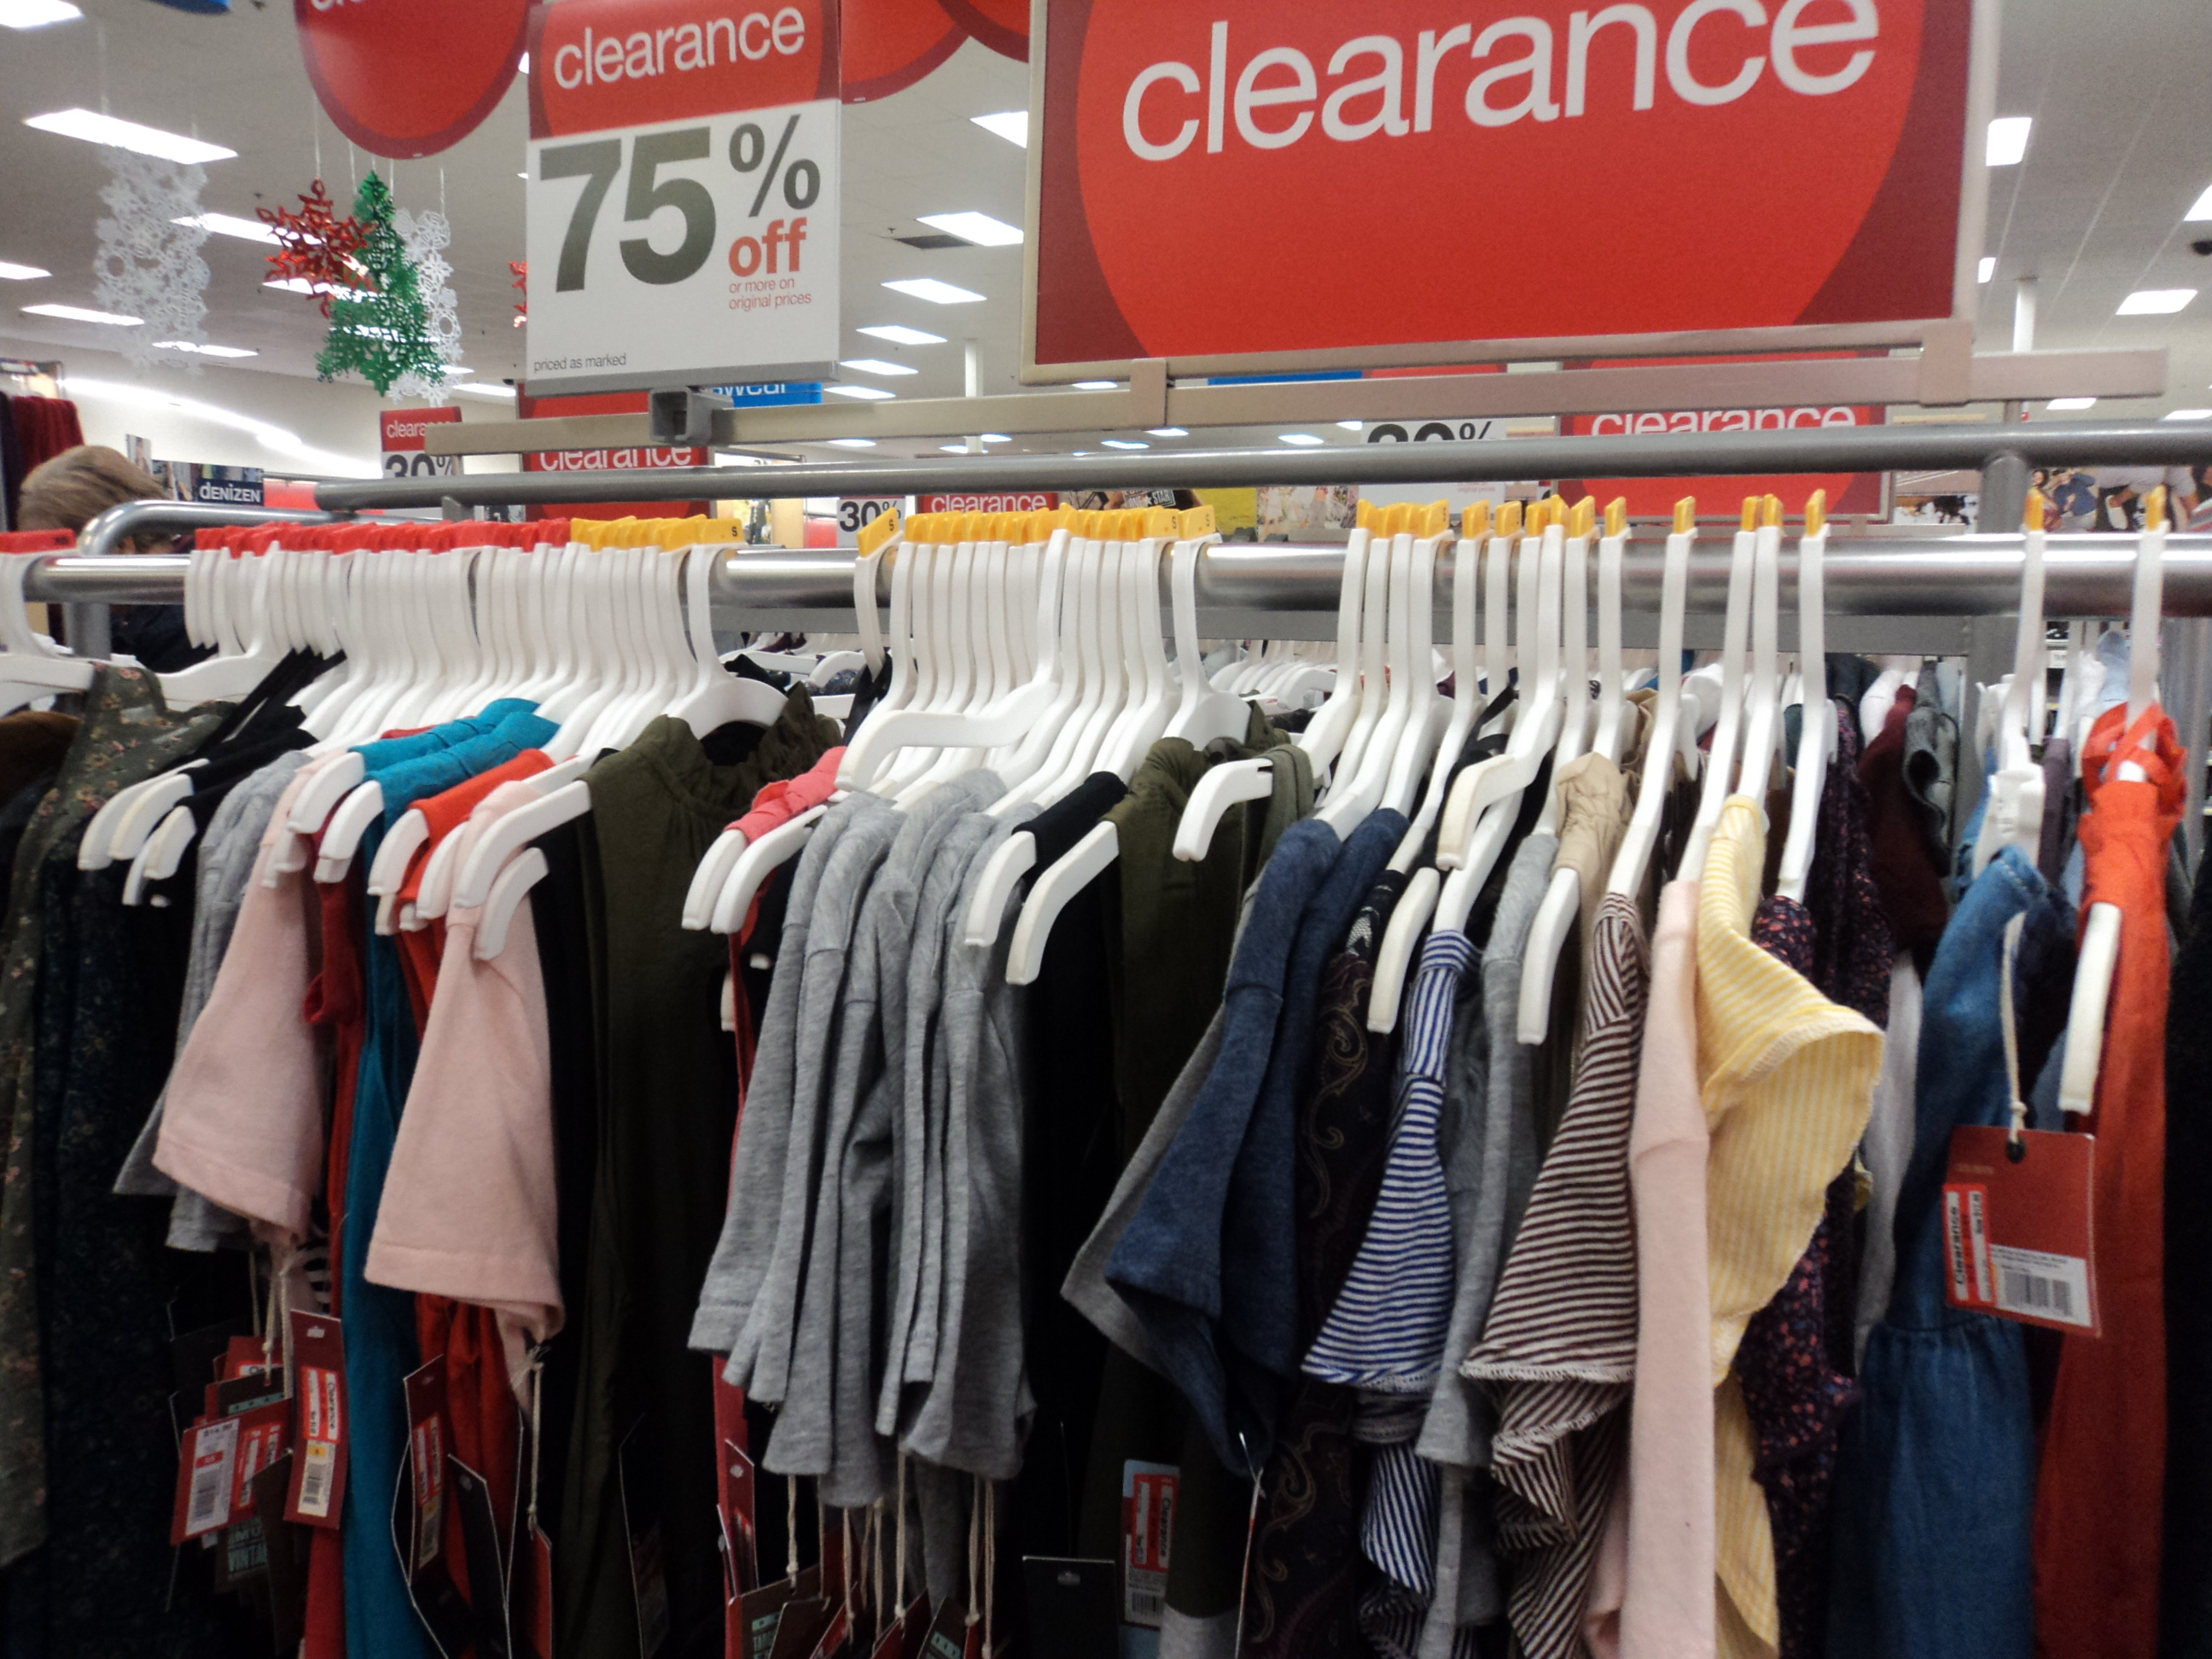 There were several racks of women's clothing at 70% off